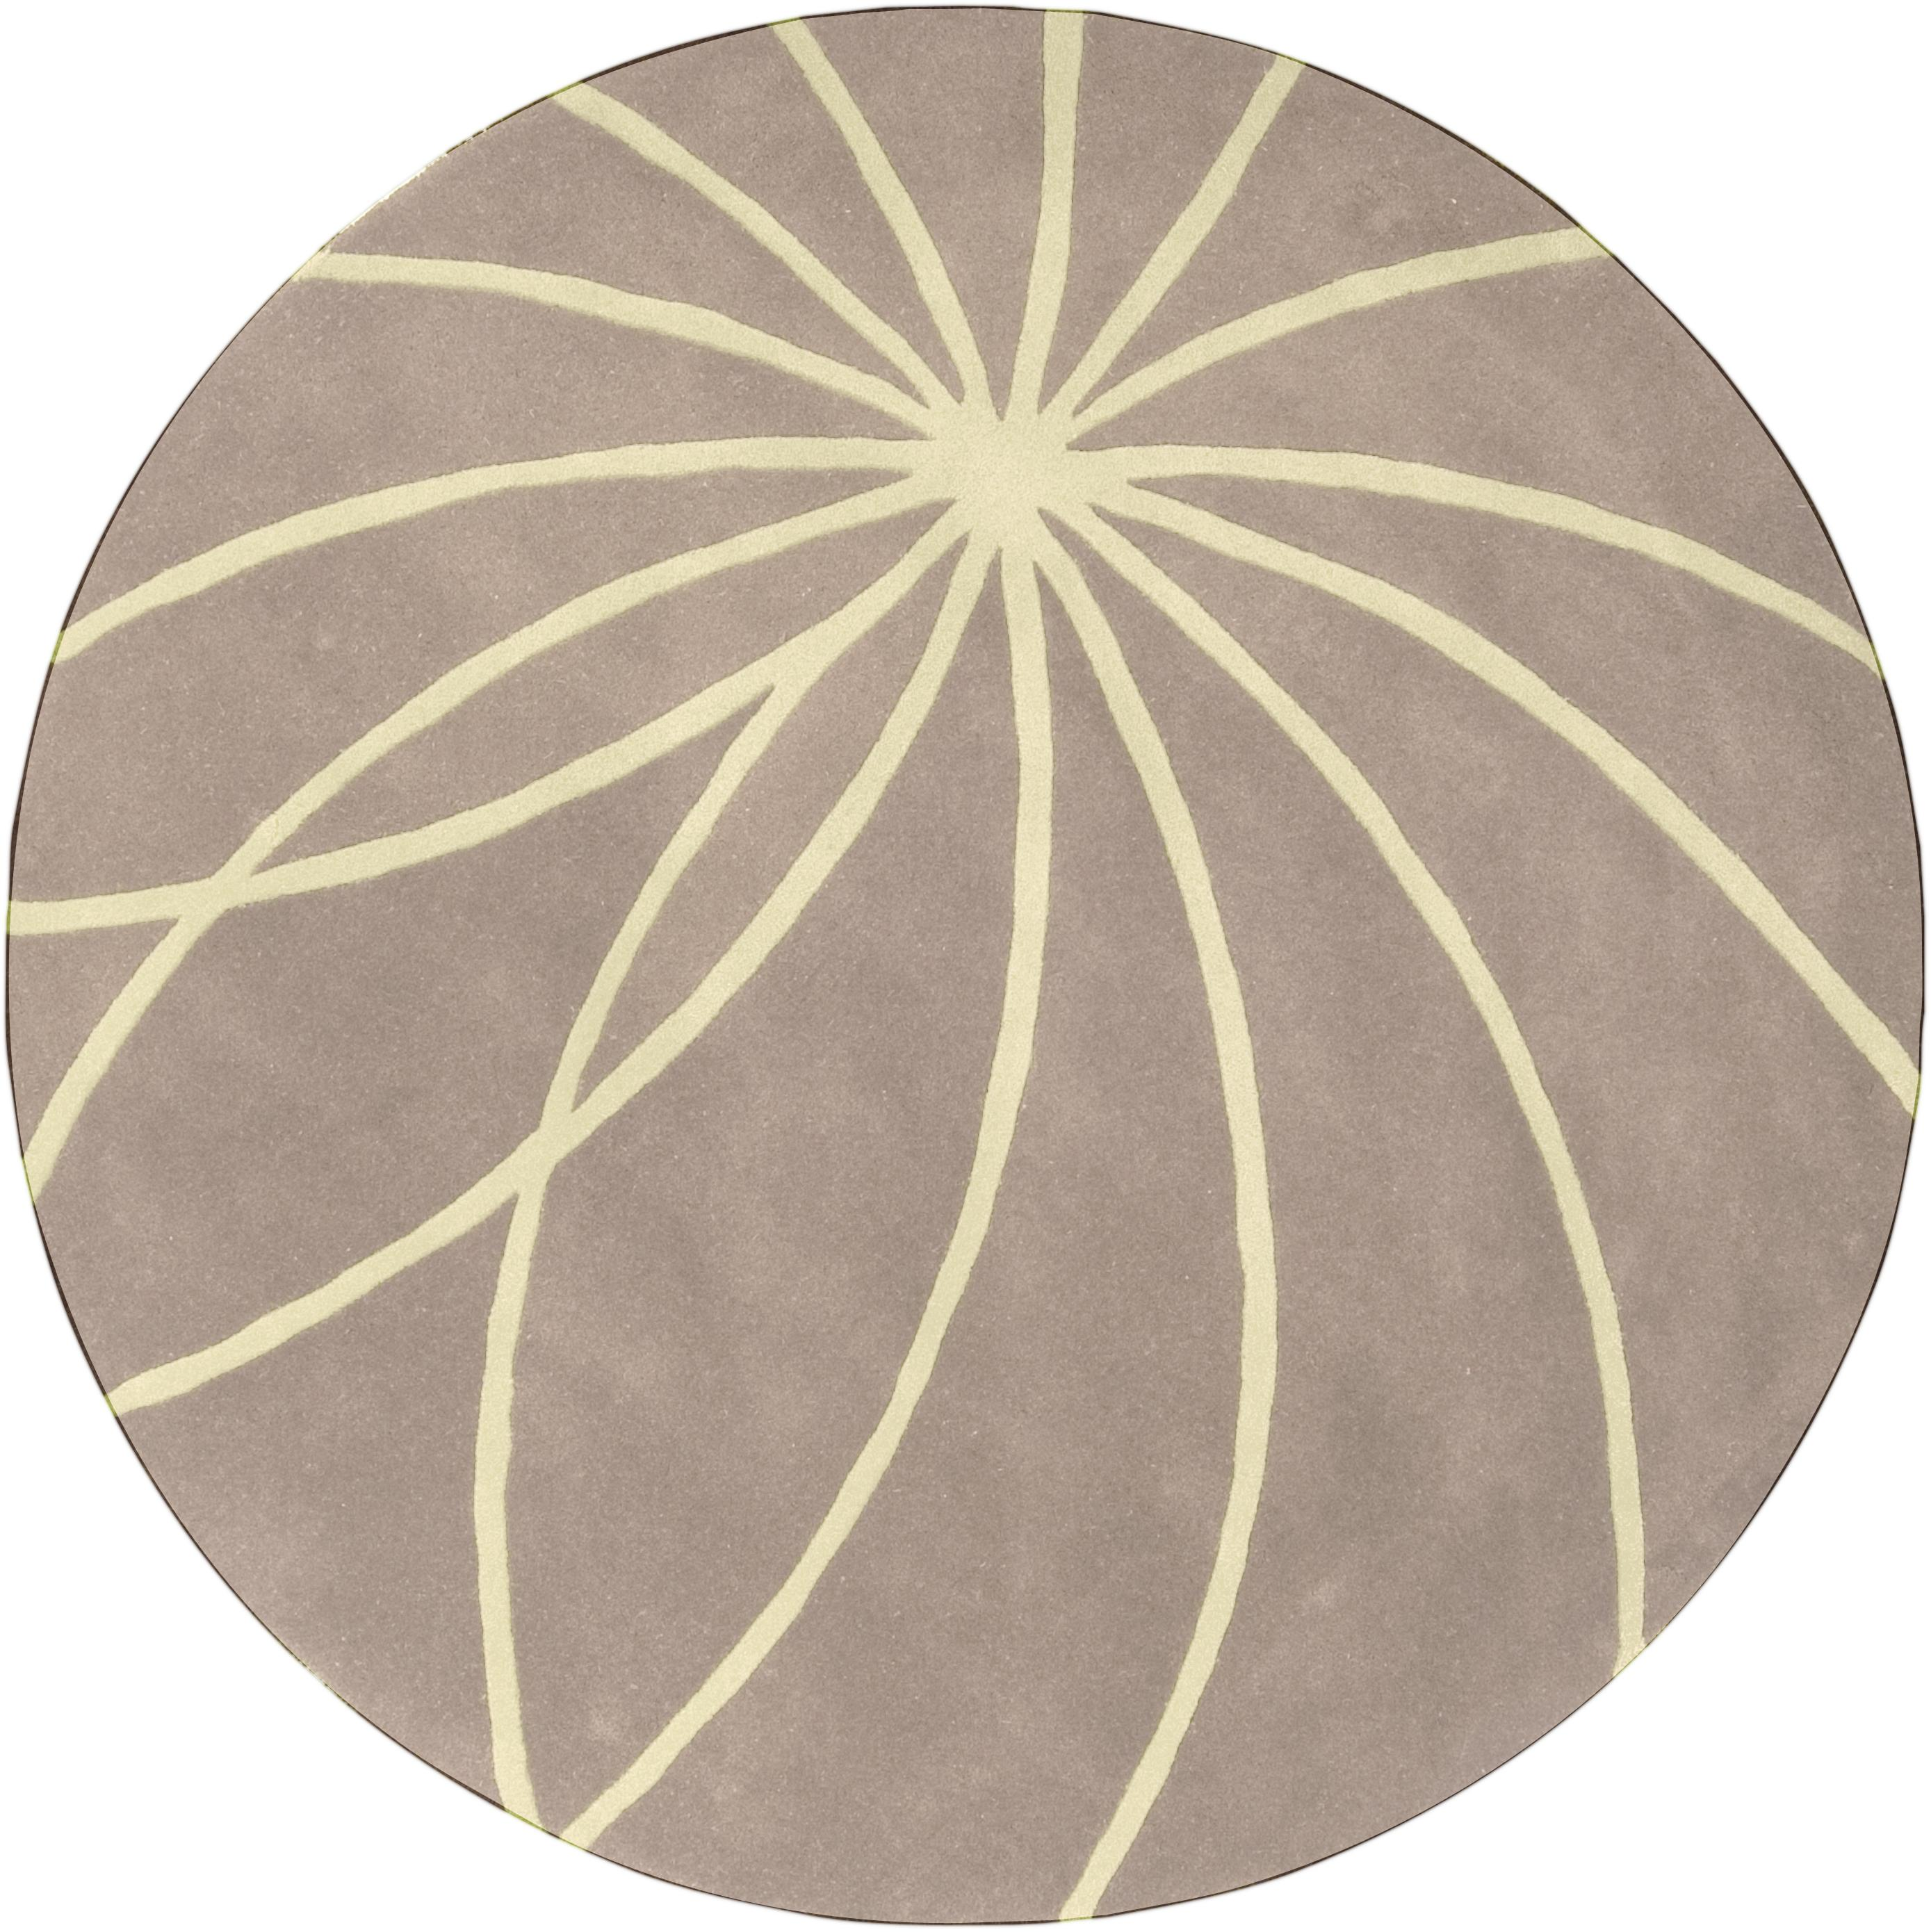 Surya Rugs Forum 4' Round - Item Number: FM7185-4RD